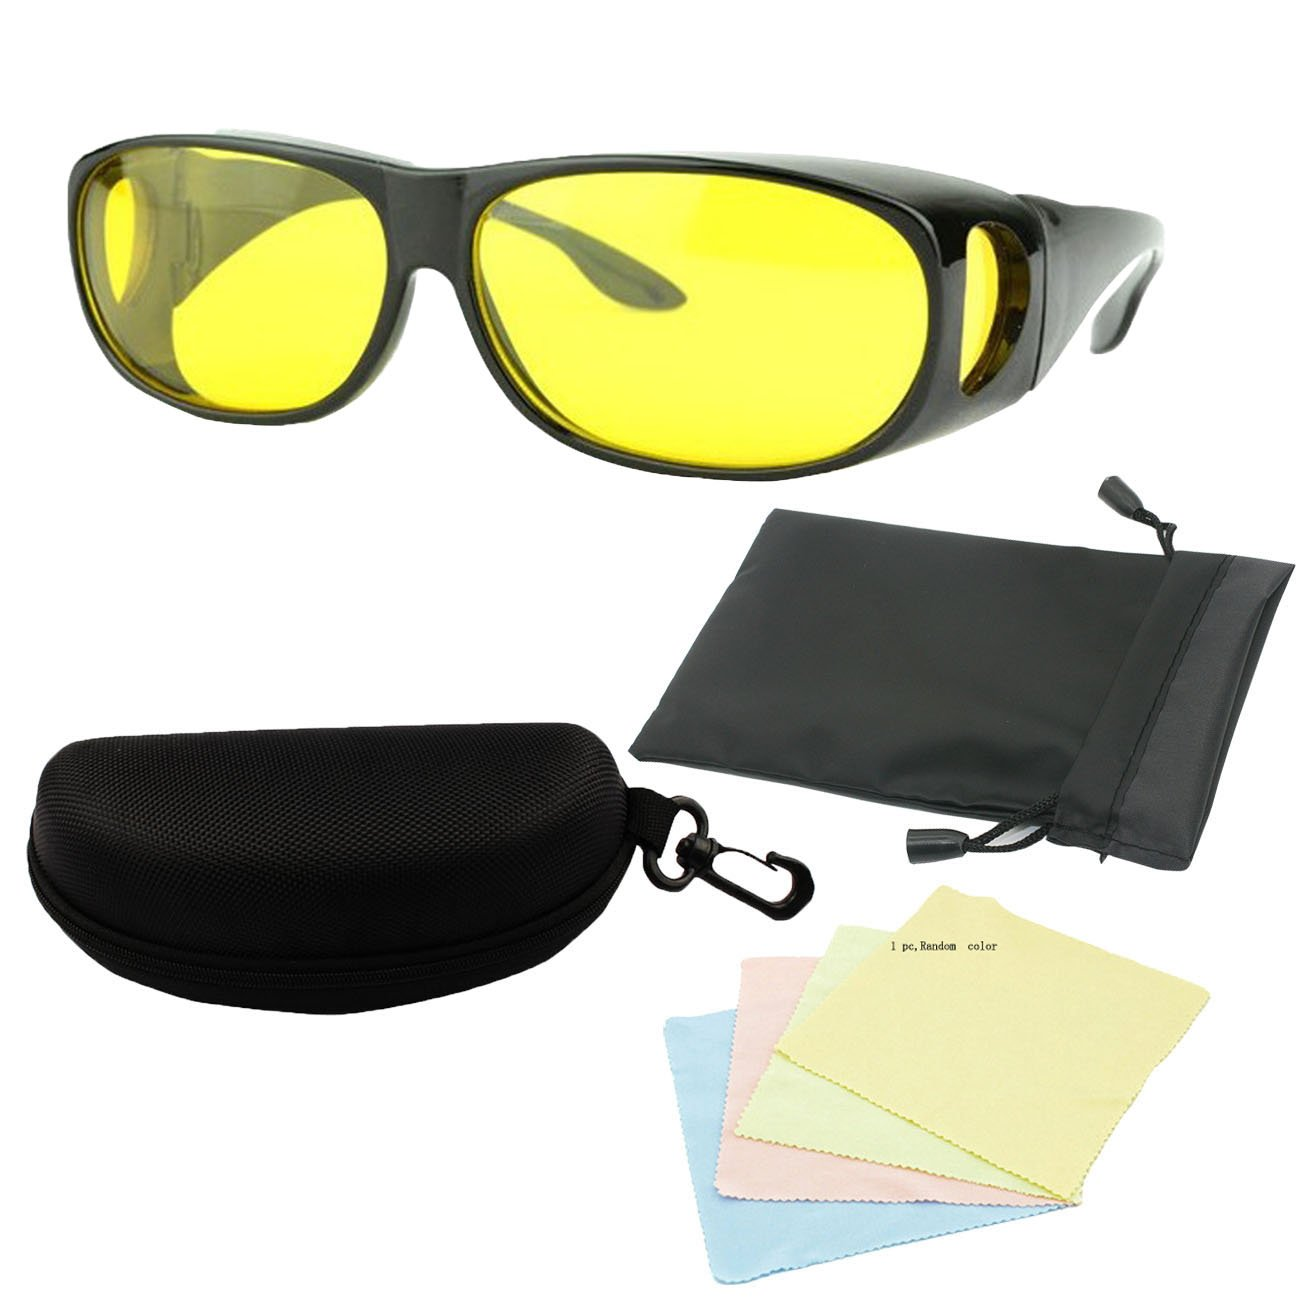 MaxAike1 Wrap Around Glasses Night Vision Yellow, 25 X 13 25 X 13 Generic